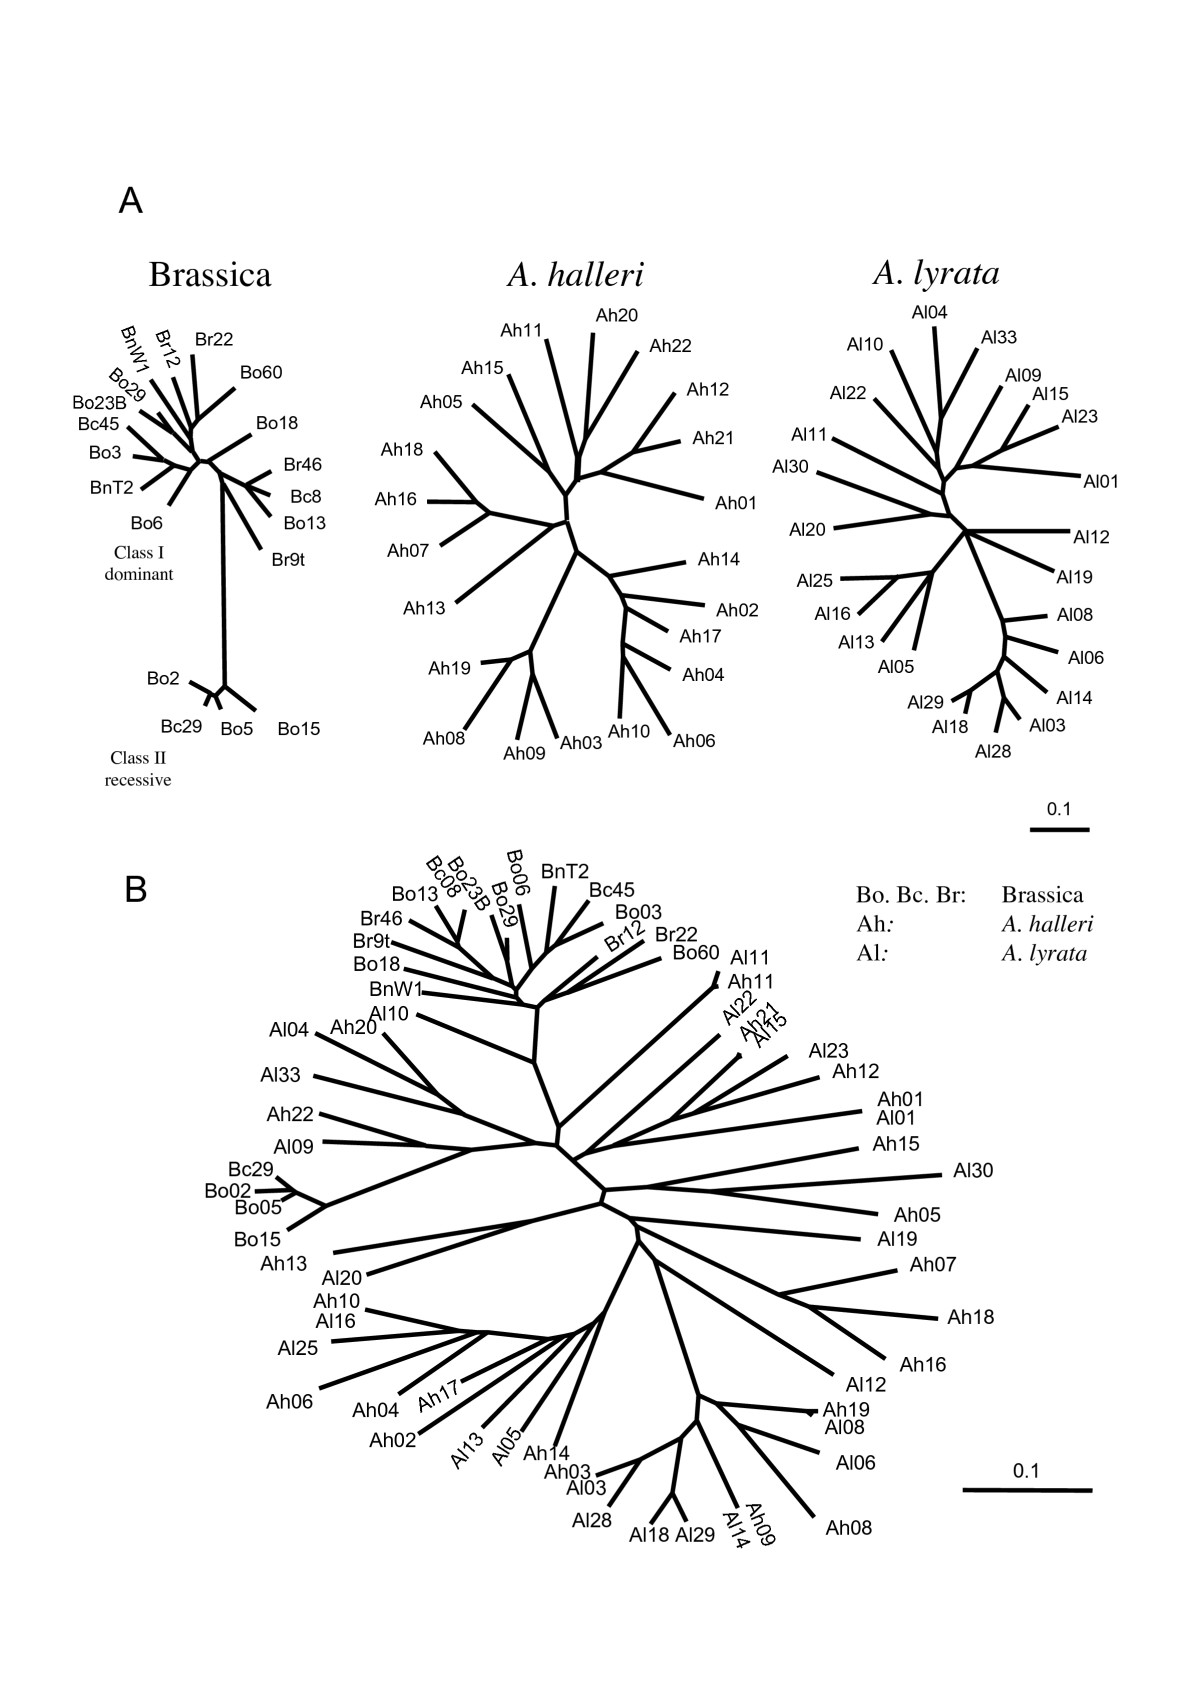 https://static-content.springer.com/image/art%3A10.1186%2F1471-2148-7-132/MediaObjects/12862_2006_Article_426_Fig1_HTML.jpg